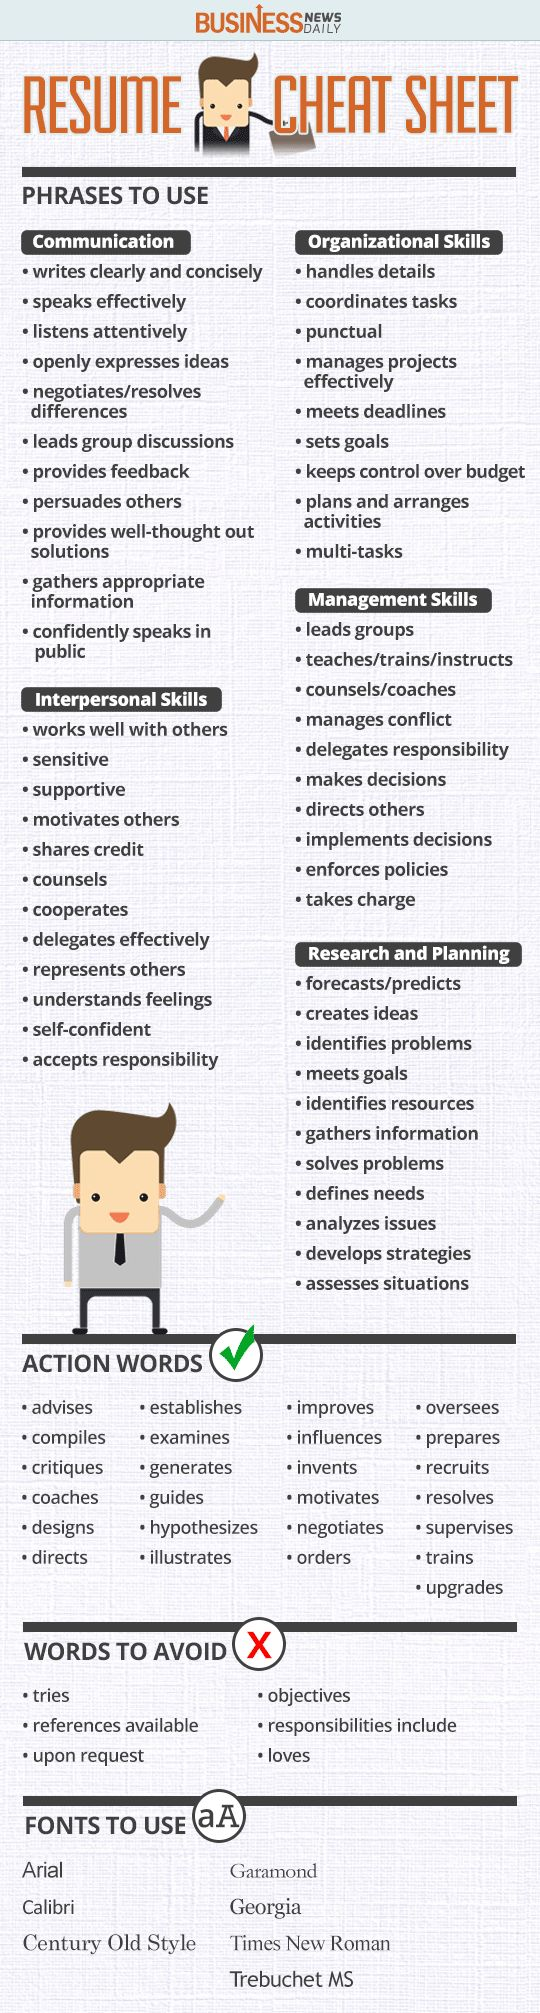 Opposenewapstandardsus  Fascinating  Ideas About Resume On Pinterest  Cv Format Resume Cv And  With Glamorous Resume Cheat Sheet Infographic Andrews Almost Done With A Complete Unit On Employment Which With Appealing Employment Resume Also Free Resume Download Templates In Addition Michigan Works Resume And General Resume Template As Well As Administration Resume Additionally How To Make A Resume On Word  From Pinterestcom With Opposenewapstandardsus  Glamorous  Ideas About Resume On Pinterest  Cv Format Resume Cv And  With Appealing Resume Cheat Sheet Infographic Andrews Almost Done With A Complete Unit On Employment Which And Fascinating Employment Resume Also Free Resume Download Templates In Addition Michigan Works Resume From Pinterestcom